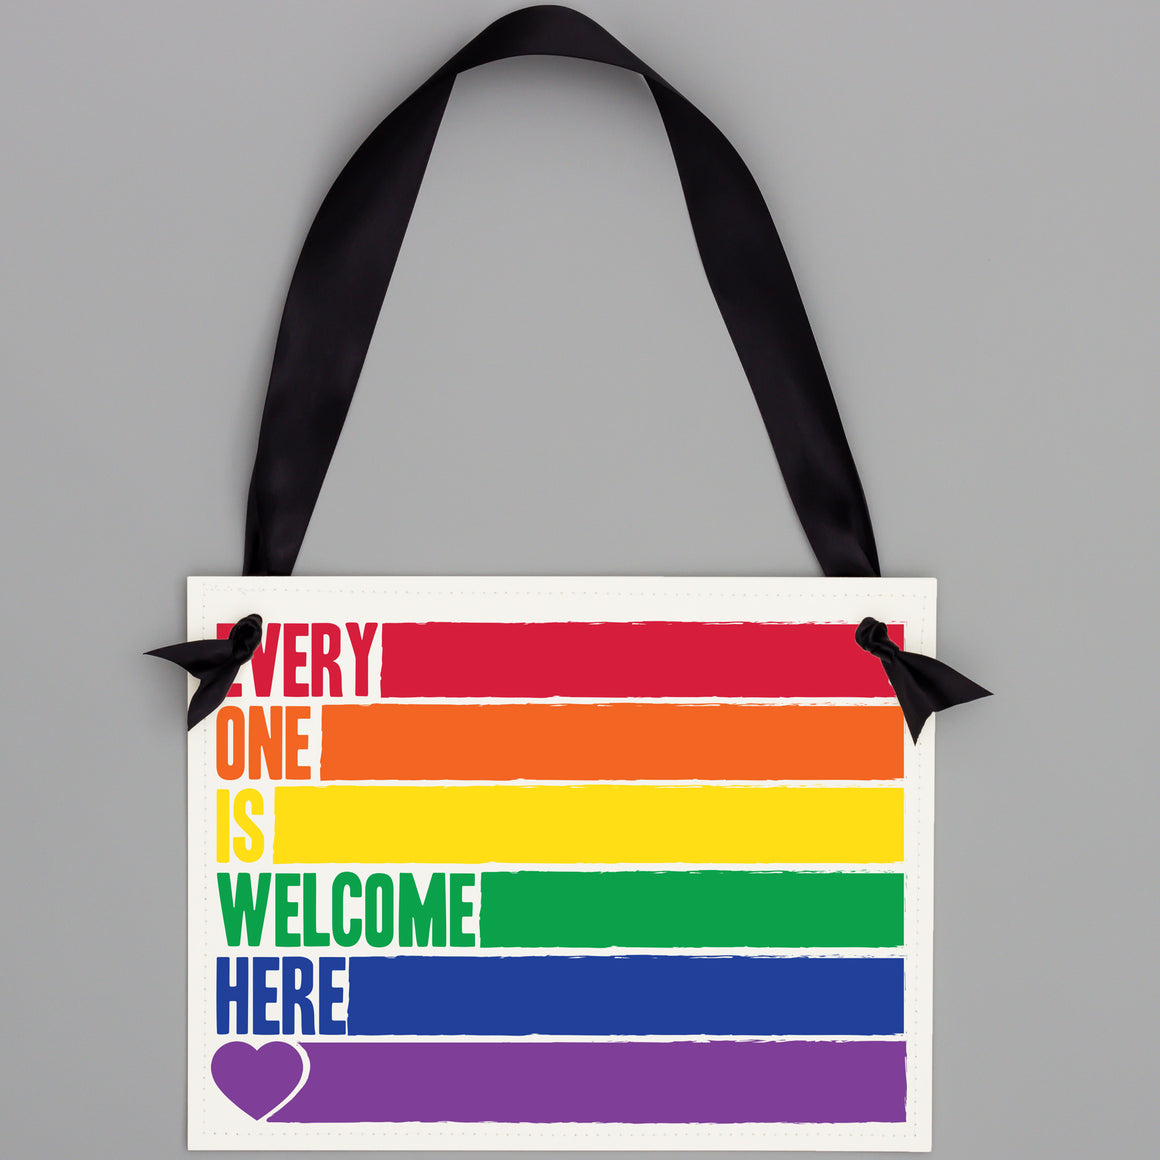 Everyone Is Welcome Here Wall Hanging Banner